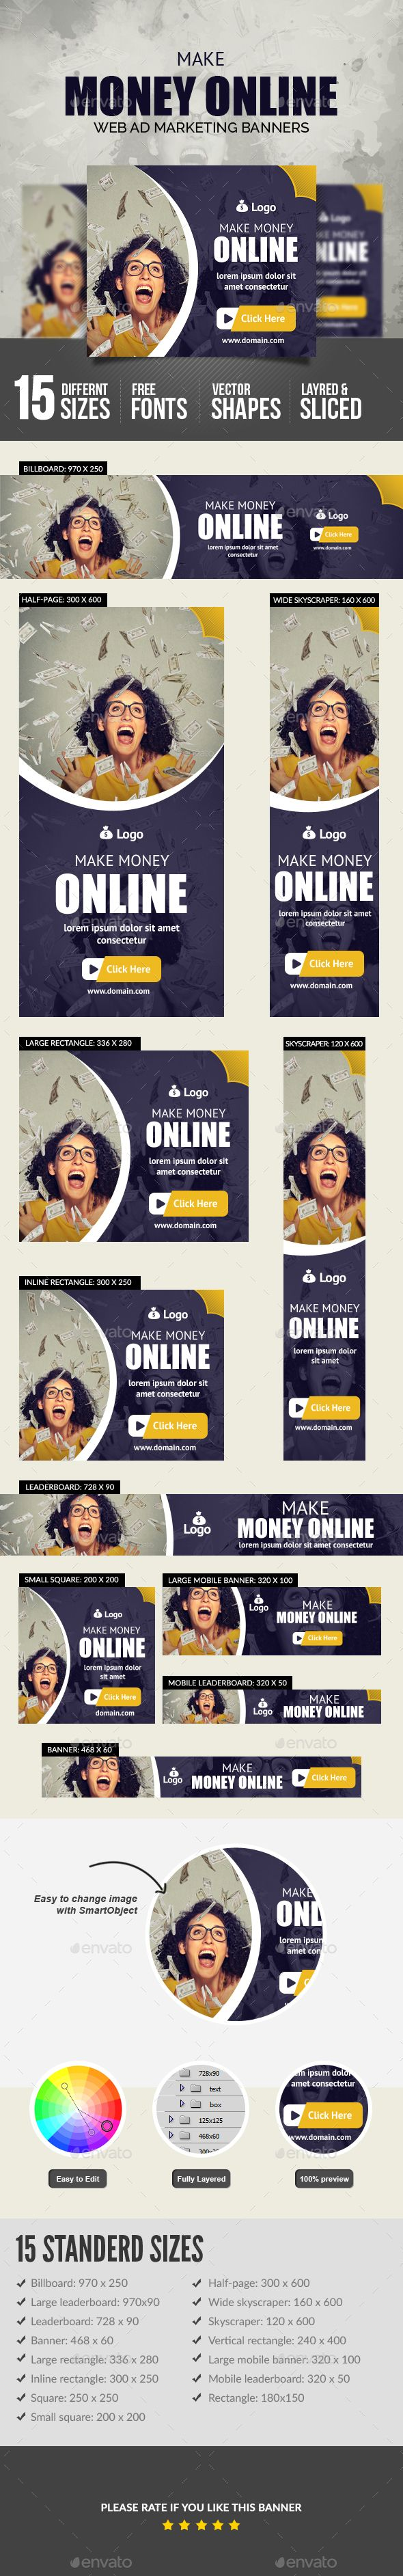 Make Money Online Banners Design Template  - Banners & Ads Web Elements Design Template PSD. Download here: https://graphicriver.net/item/make-money-online-banners/19218323?ref=yinkira